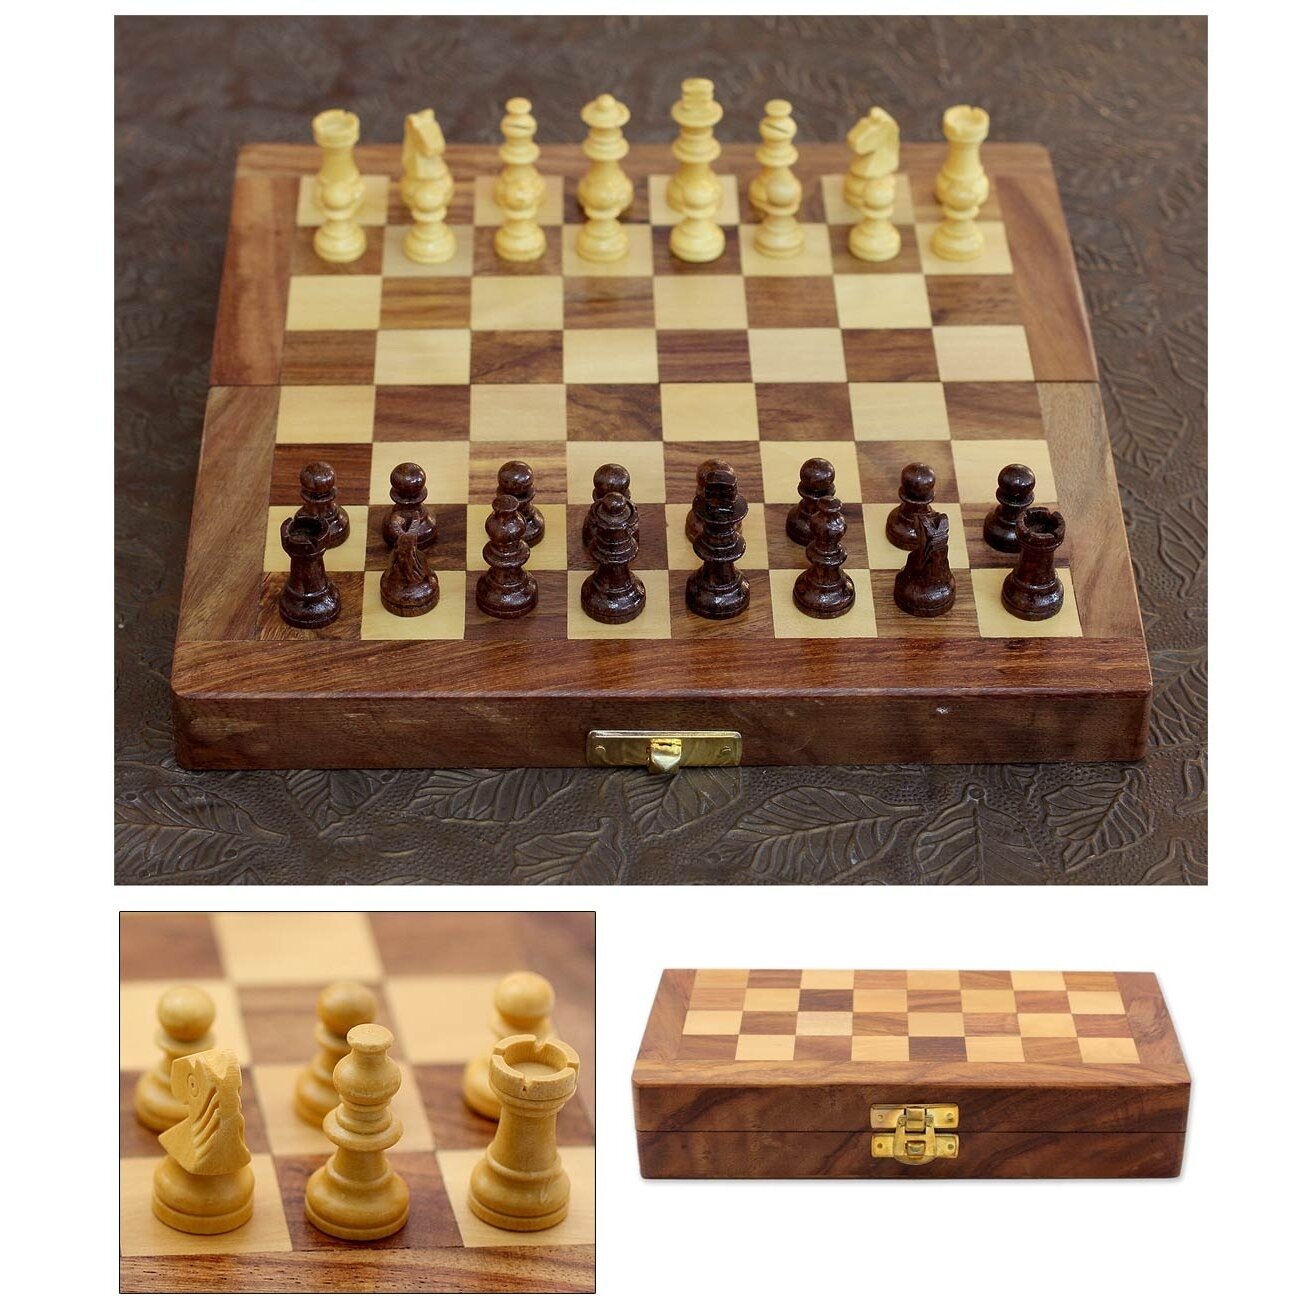 Novica fair trade decorative india wood chess set game reviews wayfair - Ornate chess sets ...